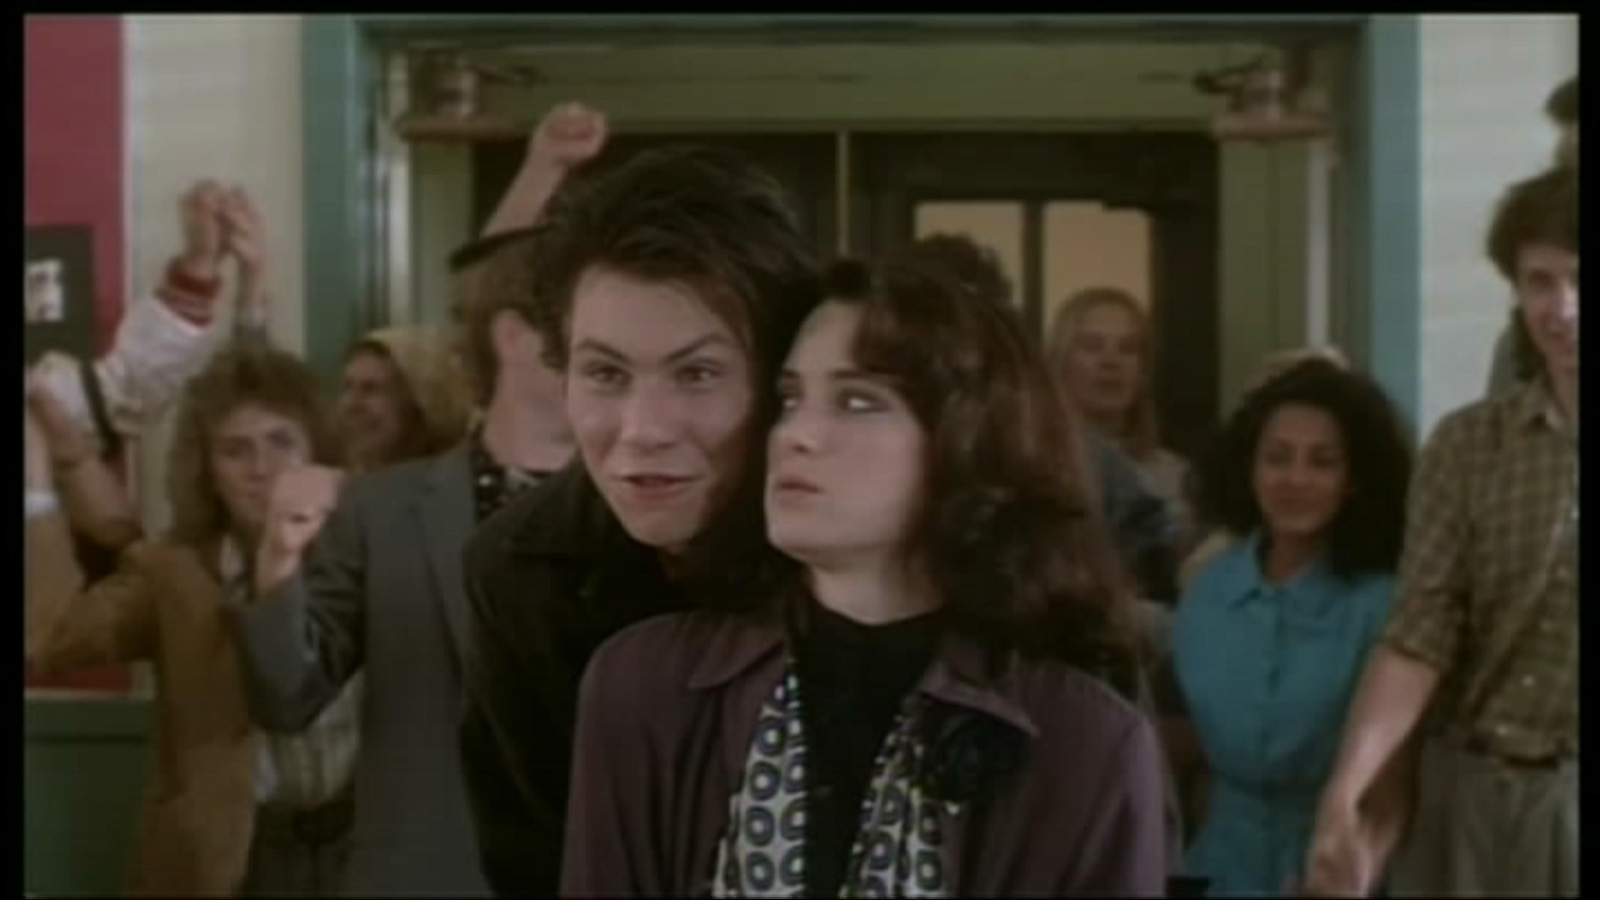 Pin Christian Slater Heathers Tumblr on Pinterest